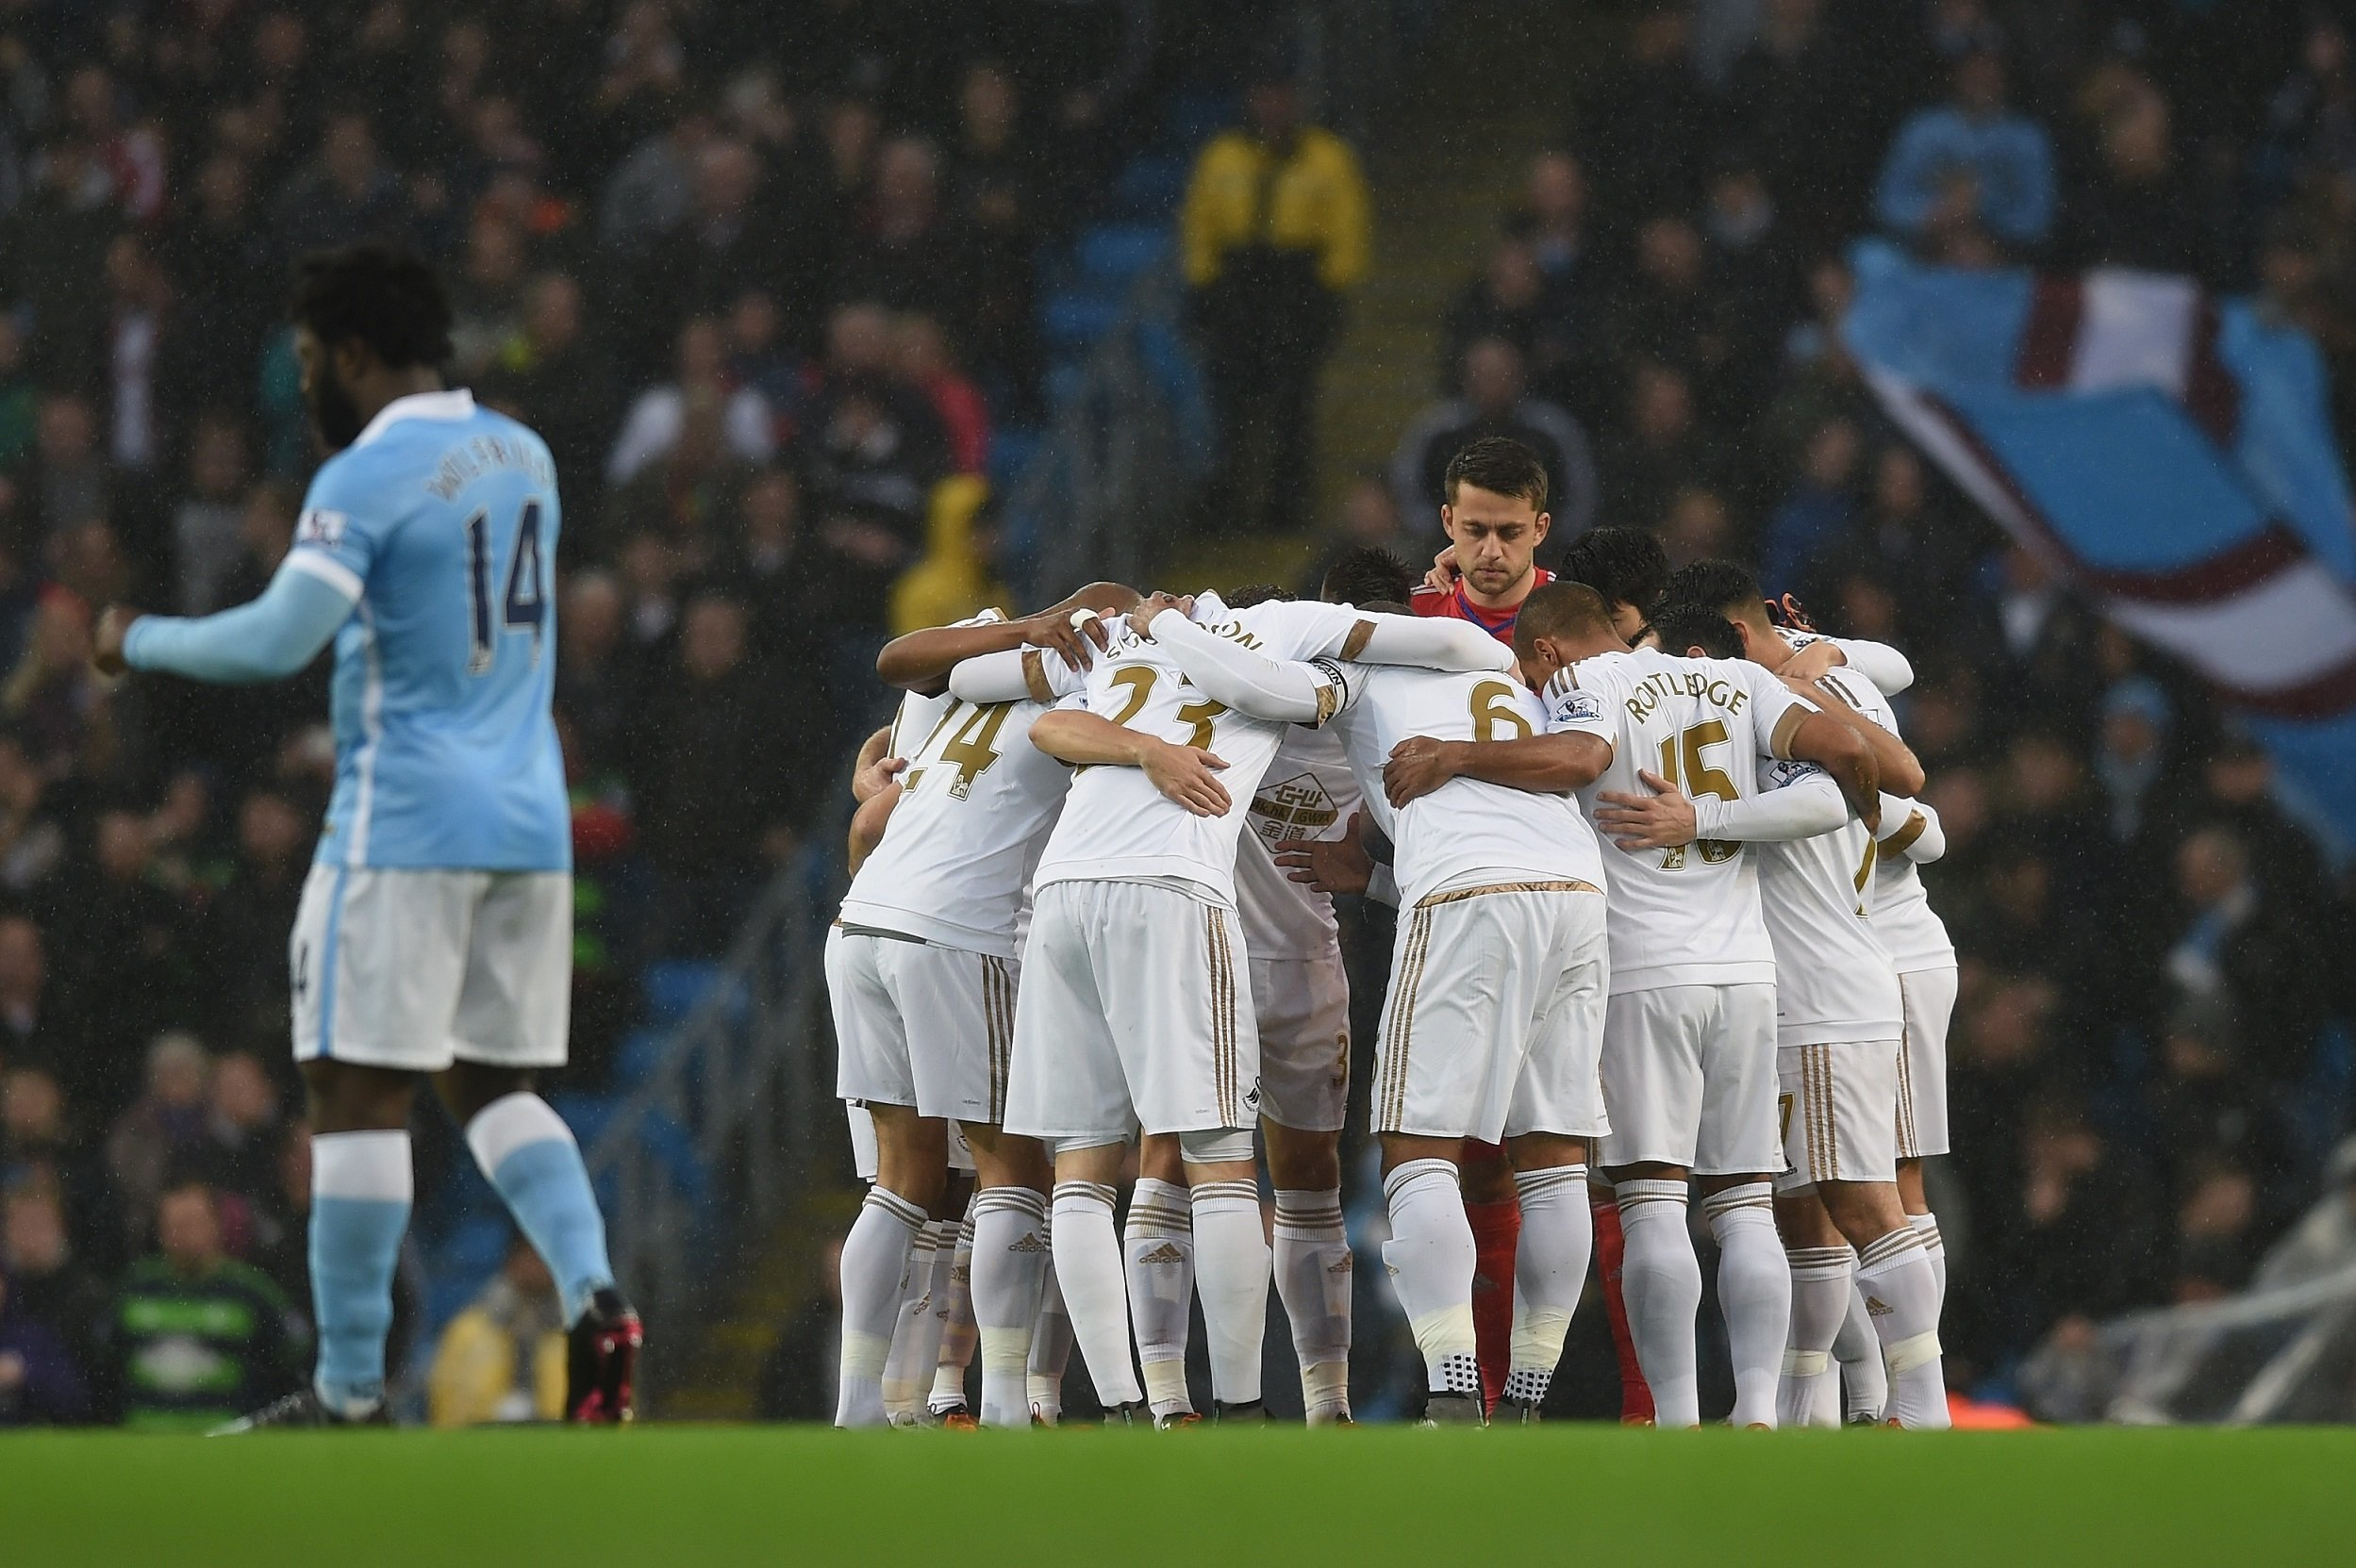 during the Barclays Premier League match between Manchester City and Swansea City at Etihad Stadium on December 12, 2015 in Manchester, United Kingdom.